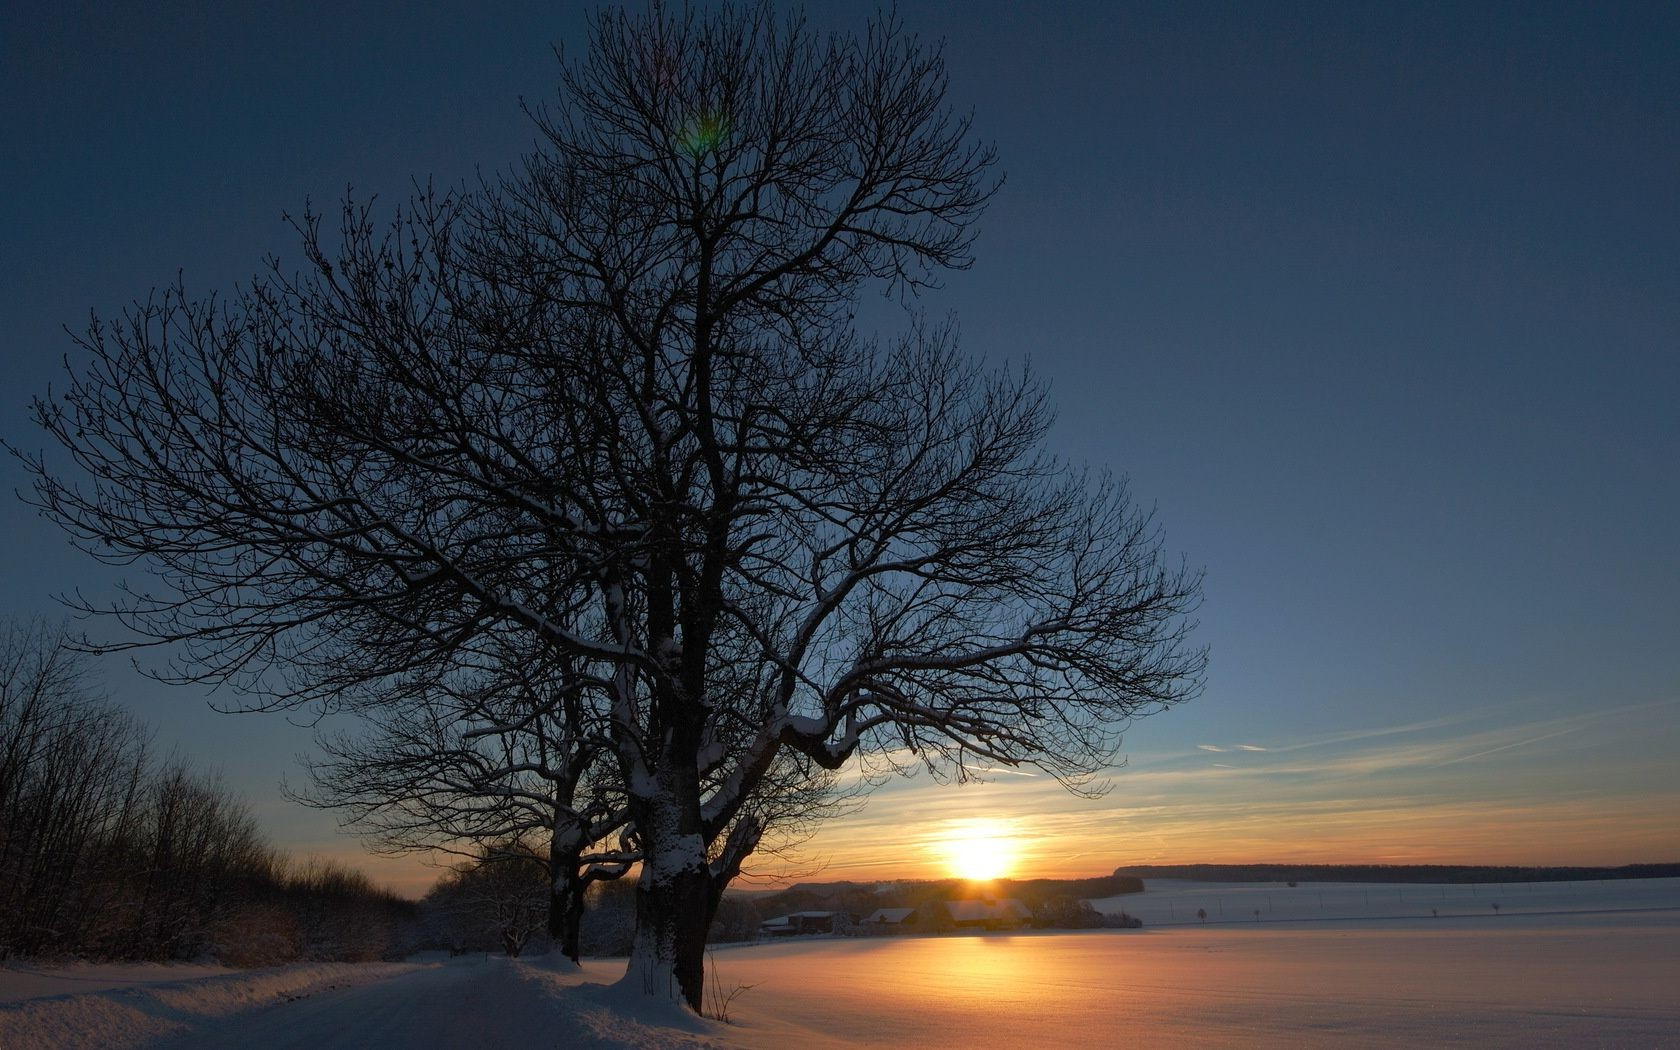 the sunset and sunrise dawn sunset landscape tree sun winter nature evening fog snow dusk fair weather silhouette outdoors light sky water backlit fall